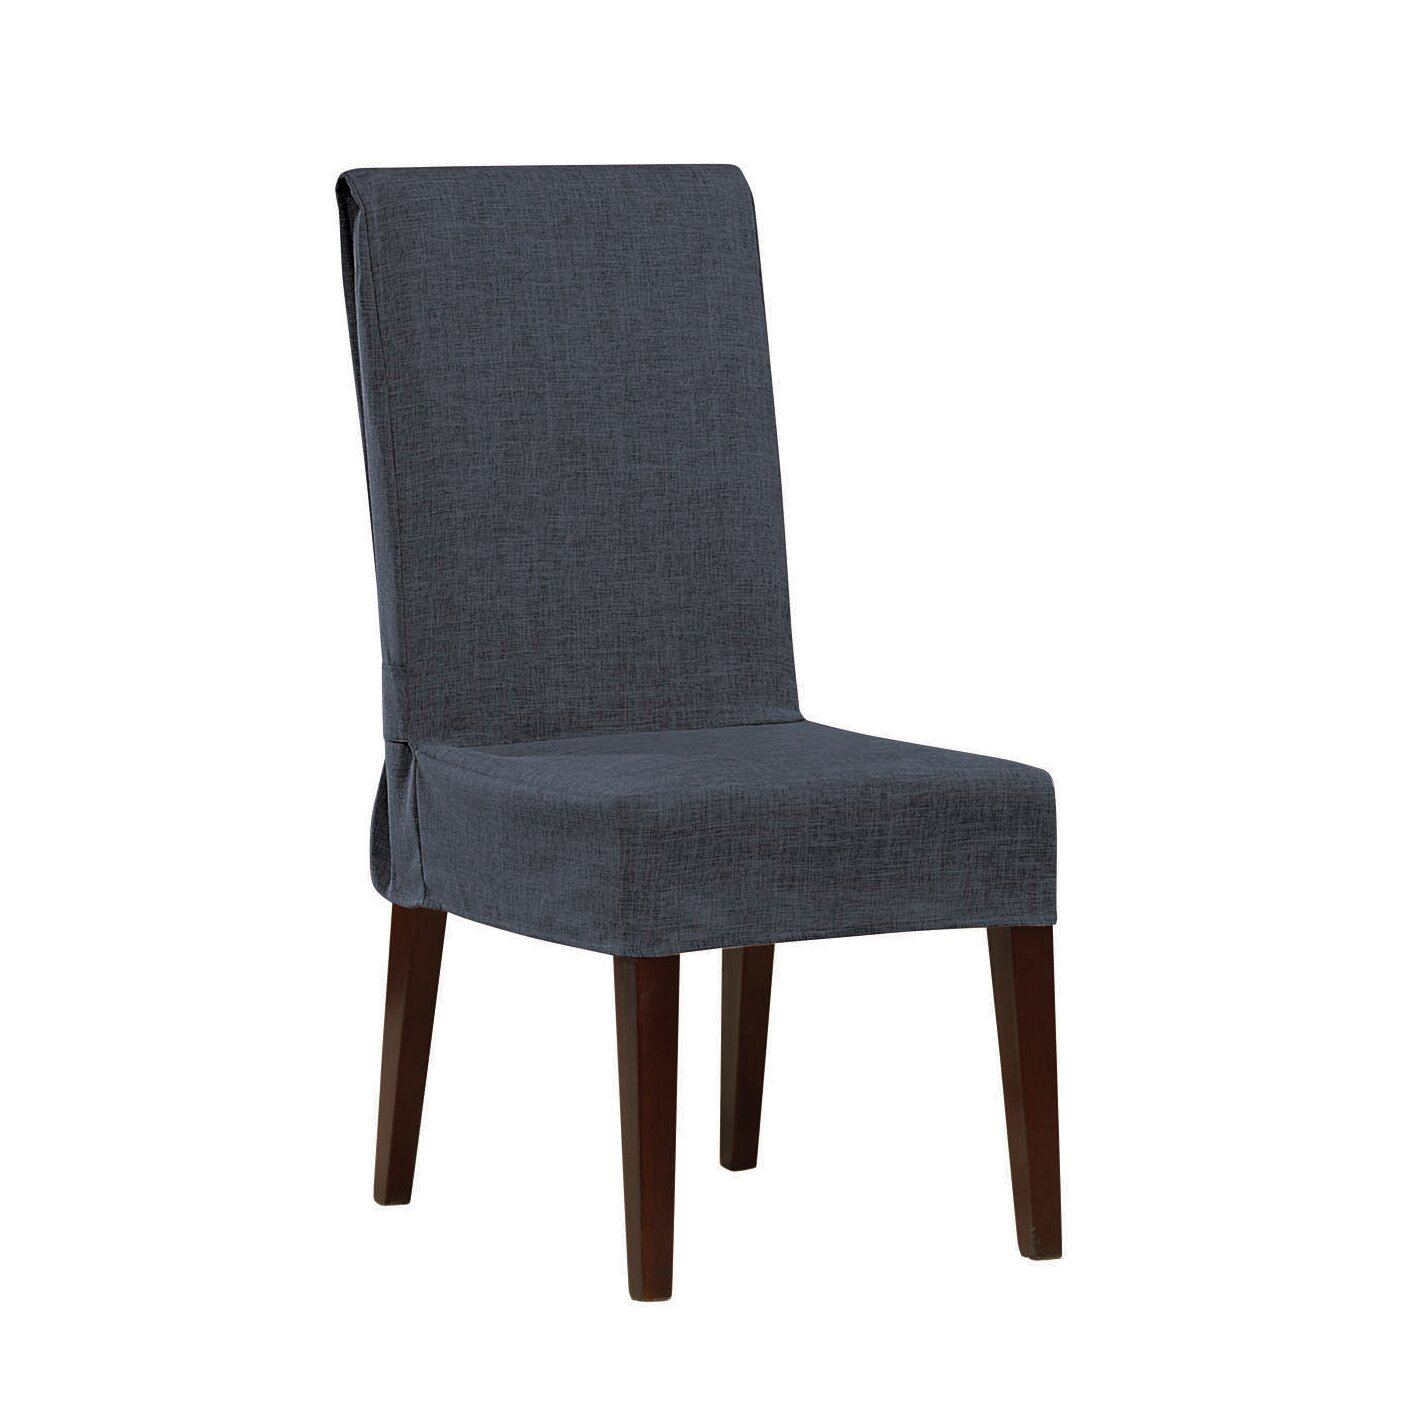 Living Room Chair Covers Similiar Parson Dining Chair Slipcover Keywords